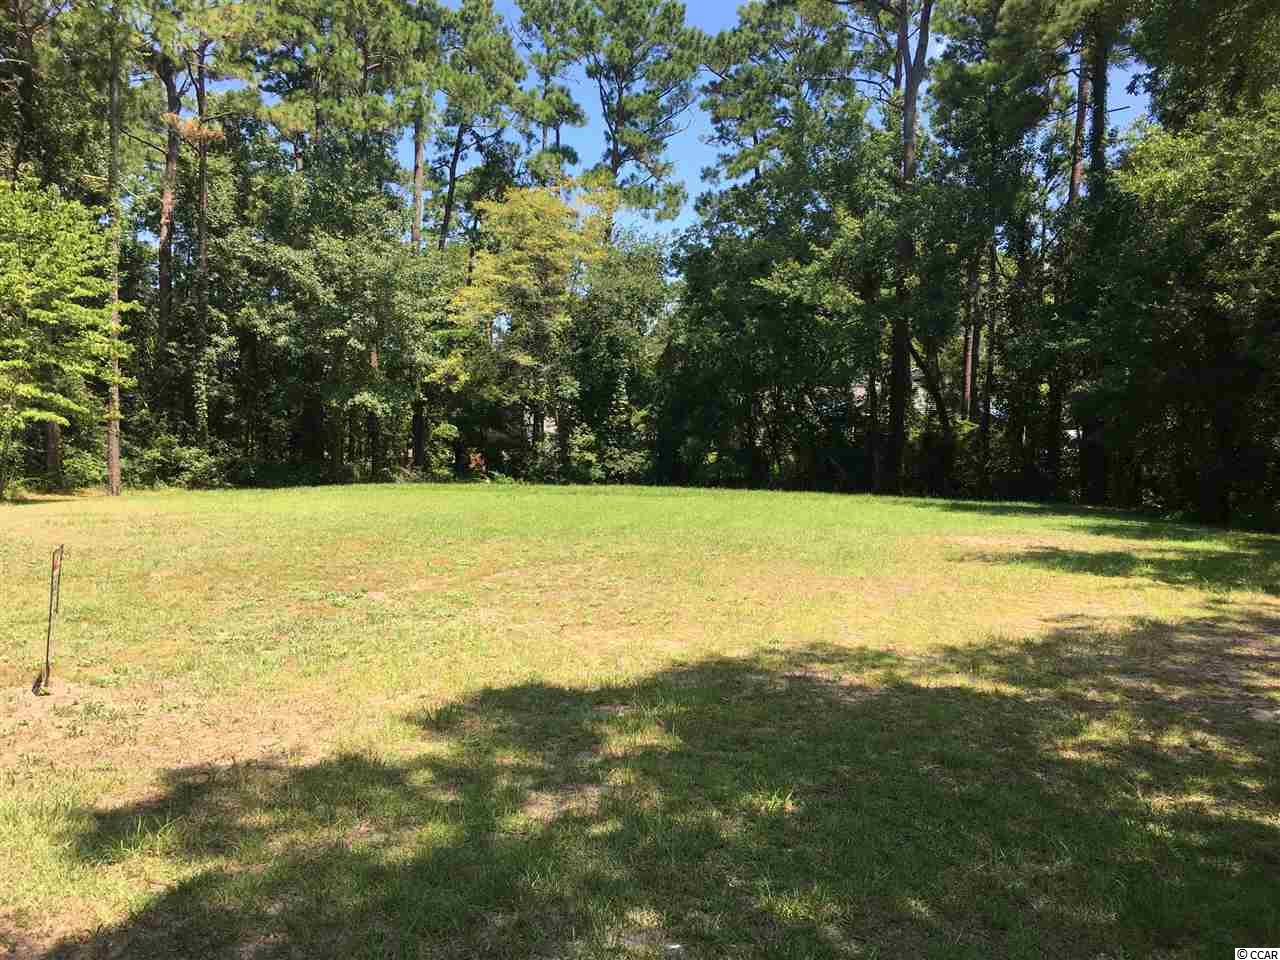 Beautiful cleared lot in a peaceful setting with NO HOA!  Located in the highly desirable Hagley Estates section of the Pawleys Island area, this property offers quick and easy access to the Waccamaw River/Intracoastal Waterway boat launch at Hagley Landing, the scenic (and quiet) Pawleys Island beaches, and the vibrant Lowcountry salt marsh ecosystem.  The land to the immediate rear is owned by the County's Environmental Protection Society, and the left side borders the 18th hole of Founders Golf Course with a wooded area in between providing a natural privacy buffer for your dream home.  Very convenient to the area's renowned shopping, dining, and entertainment opportunities, numerous top-notch golf courses, and historic Georgetown, with the Charleston area only a short hour's drive away.